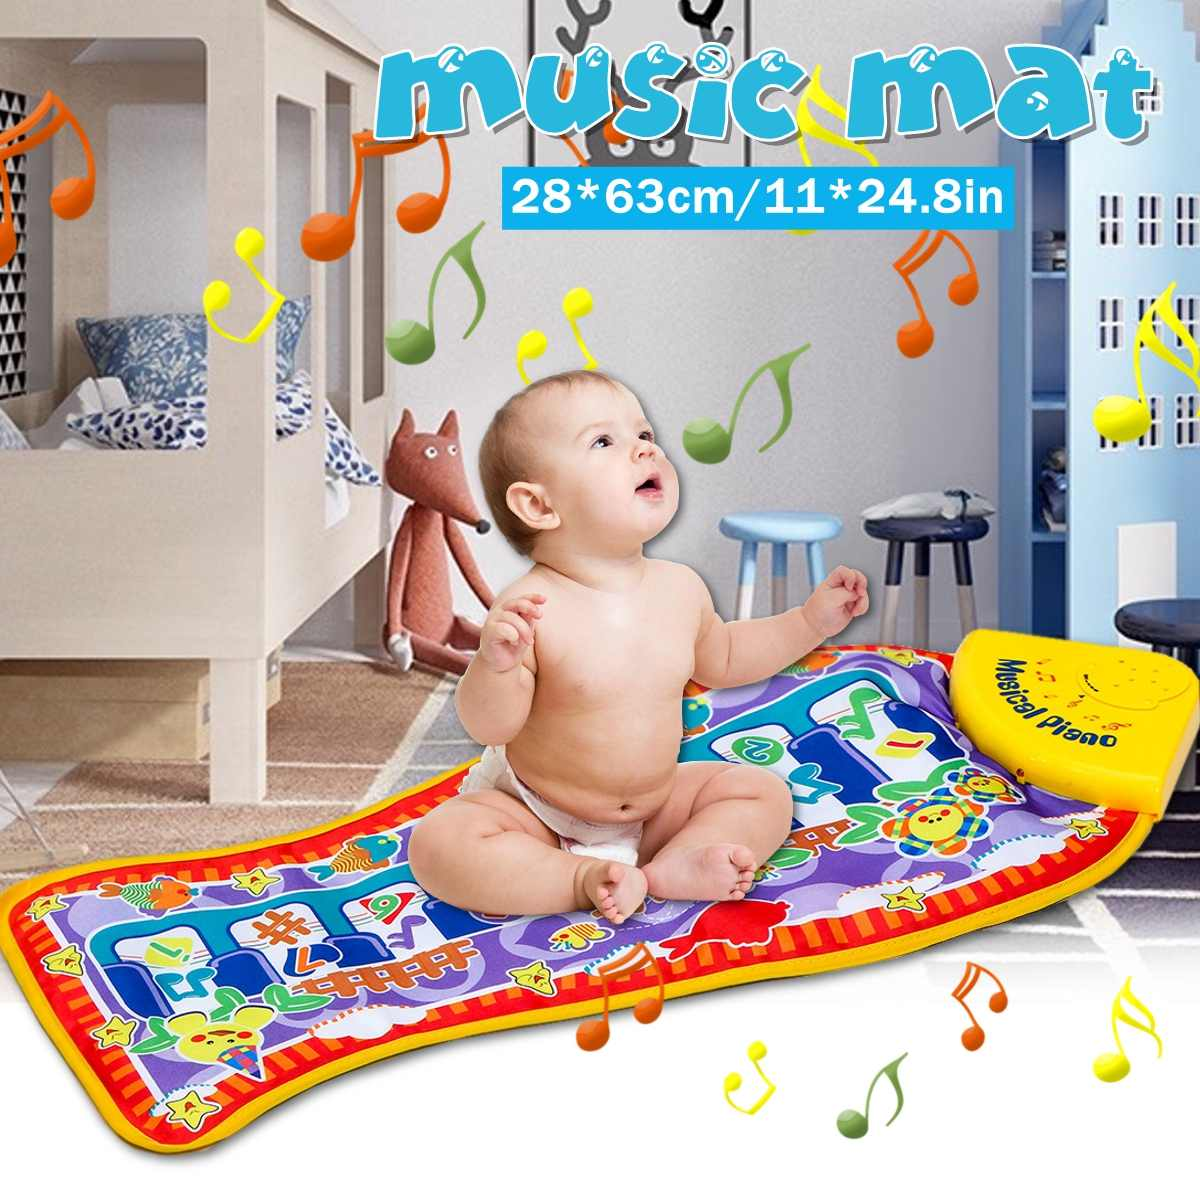 Soft Baby Musical Piano Mat Early Education Toys Music Mat Musical Blanket Touch Keyboard Play Mat Gifts For Toddlers Kids